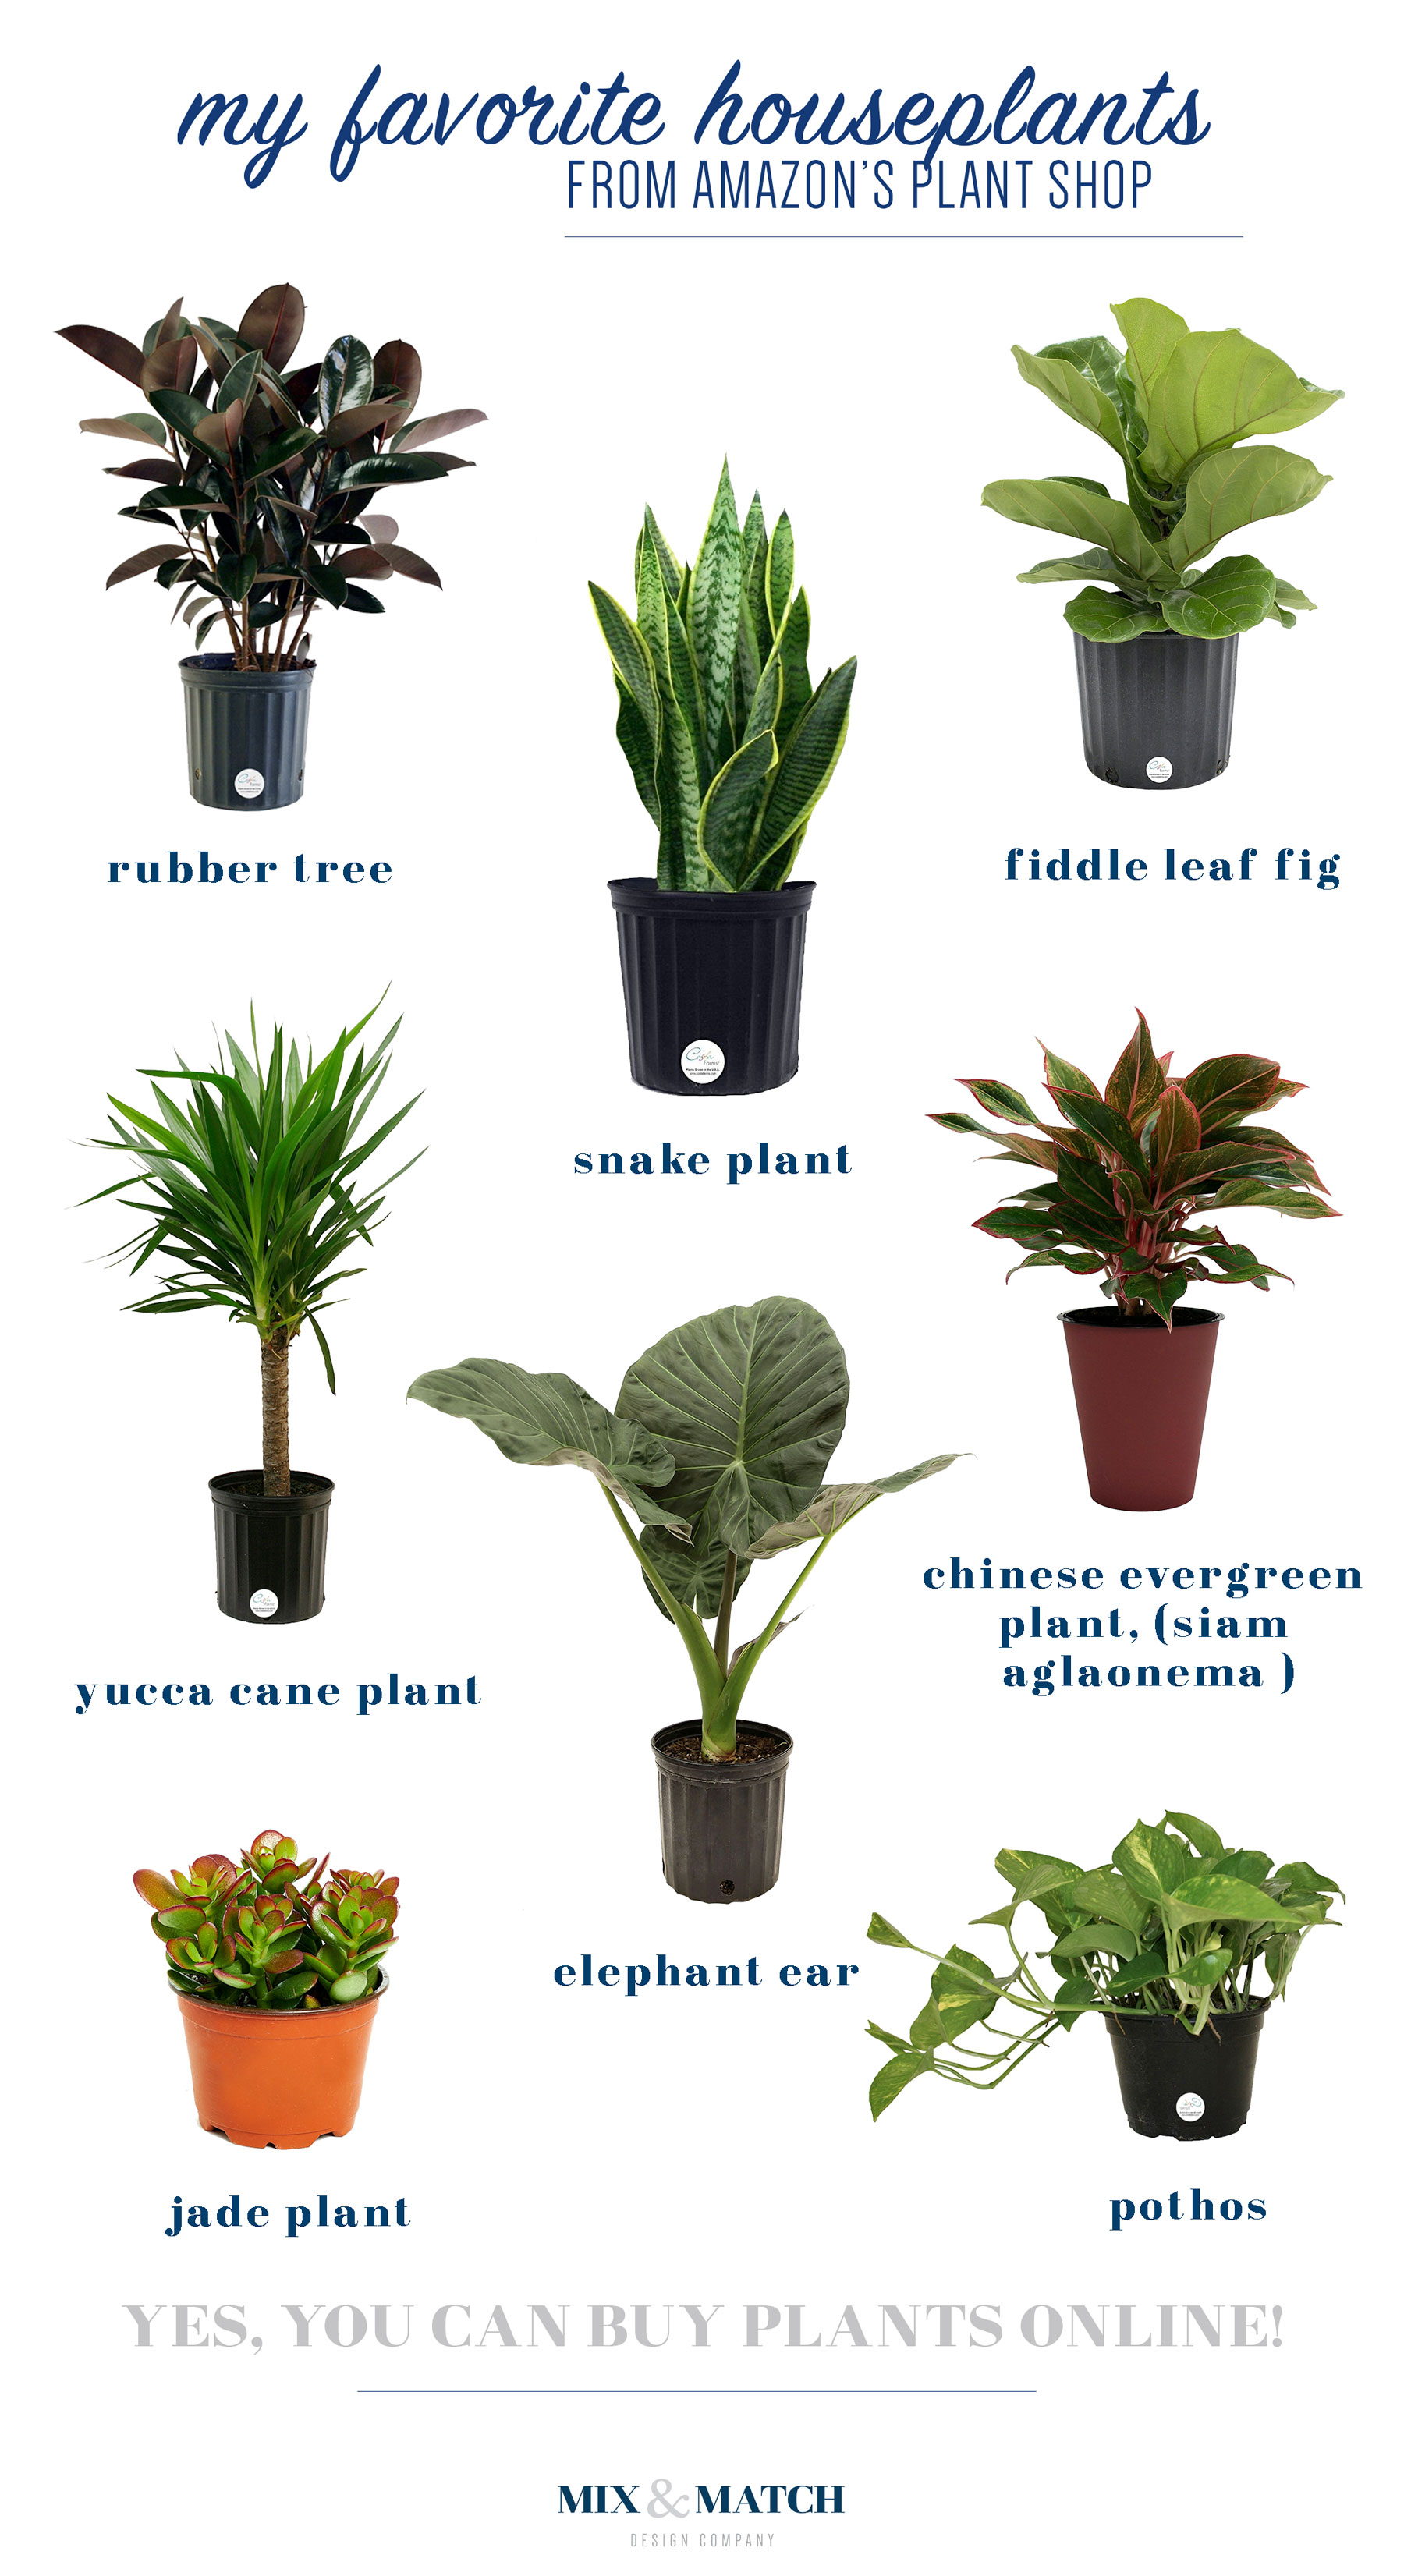 Did you know you can buy indoor plants online? Amazon has a new houseplant shop and these are some of my favorites. Many of these are easy to care for (like the pothos and snake plant!) and will add so much life to the decor in your home!